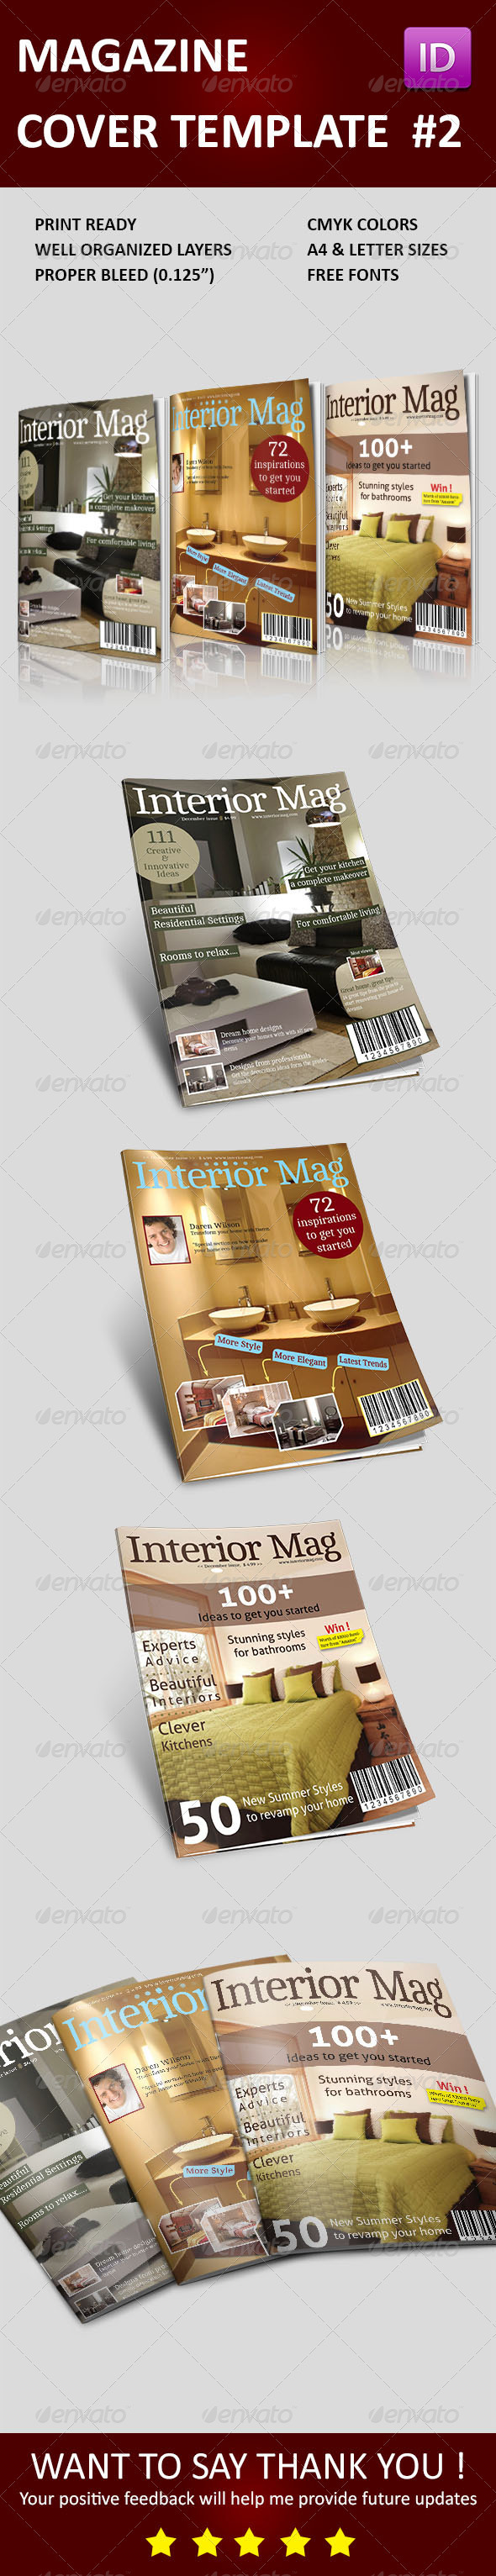 Magazine Cover Templates Vol 2 - Magazines Print Templates